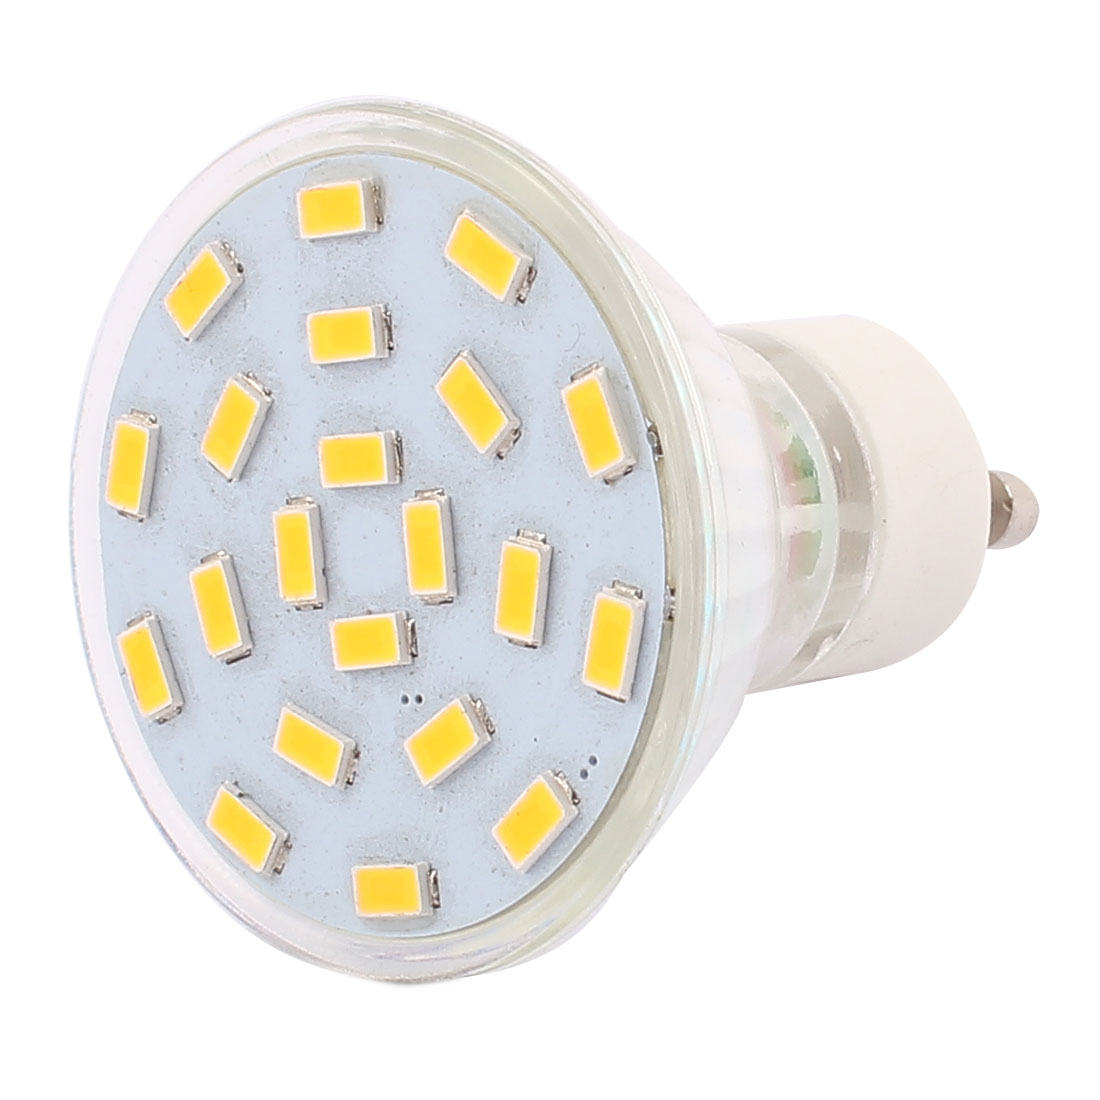 220V-240V GU10 LED Light 3W 5730 SMD 21 LEDs Spotlight Down Lamp Bulb Warm White